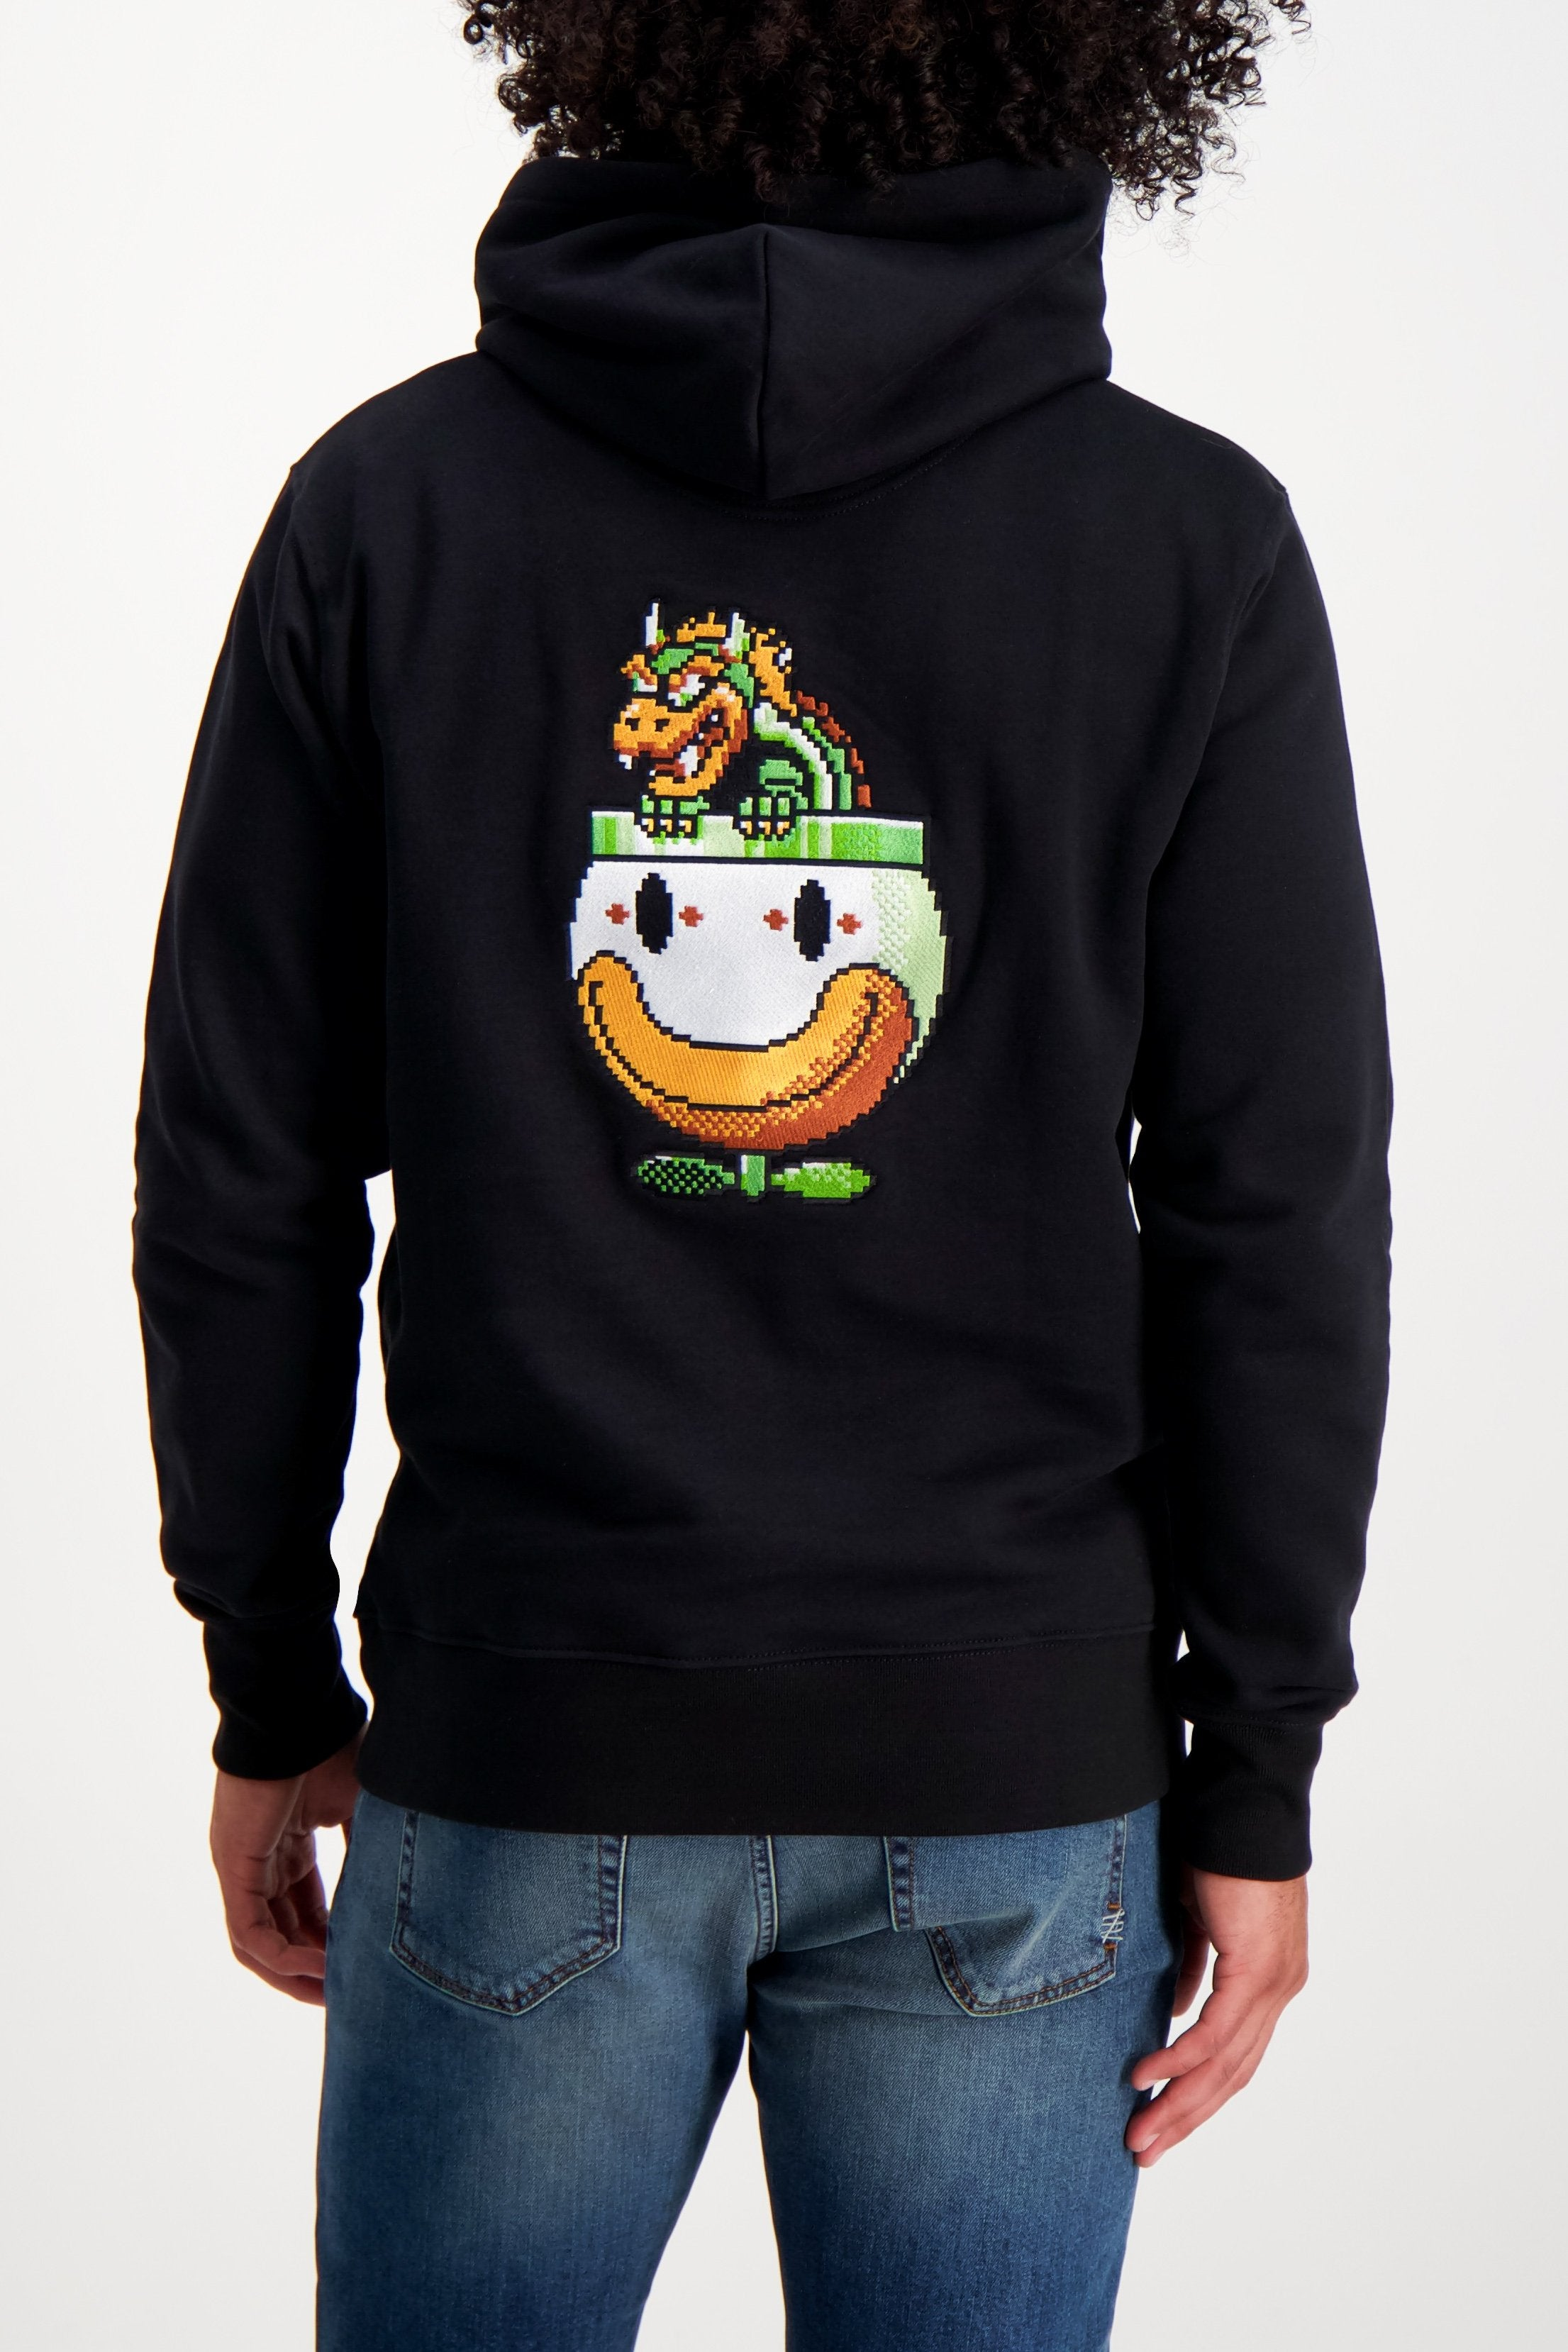 Back Crop Image Of Model Wearing Bricktown Bowser Hoodie